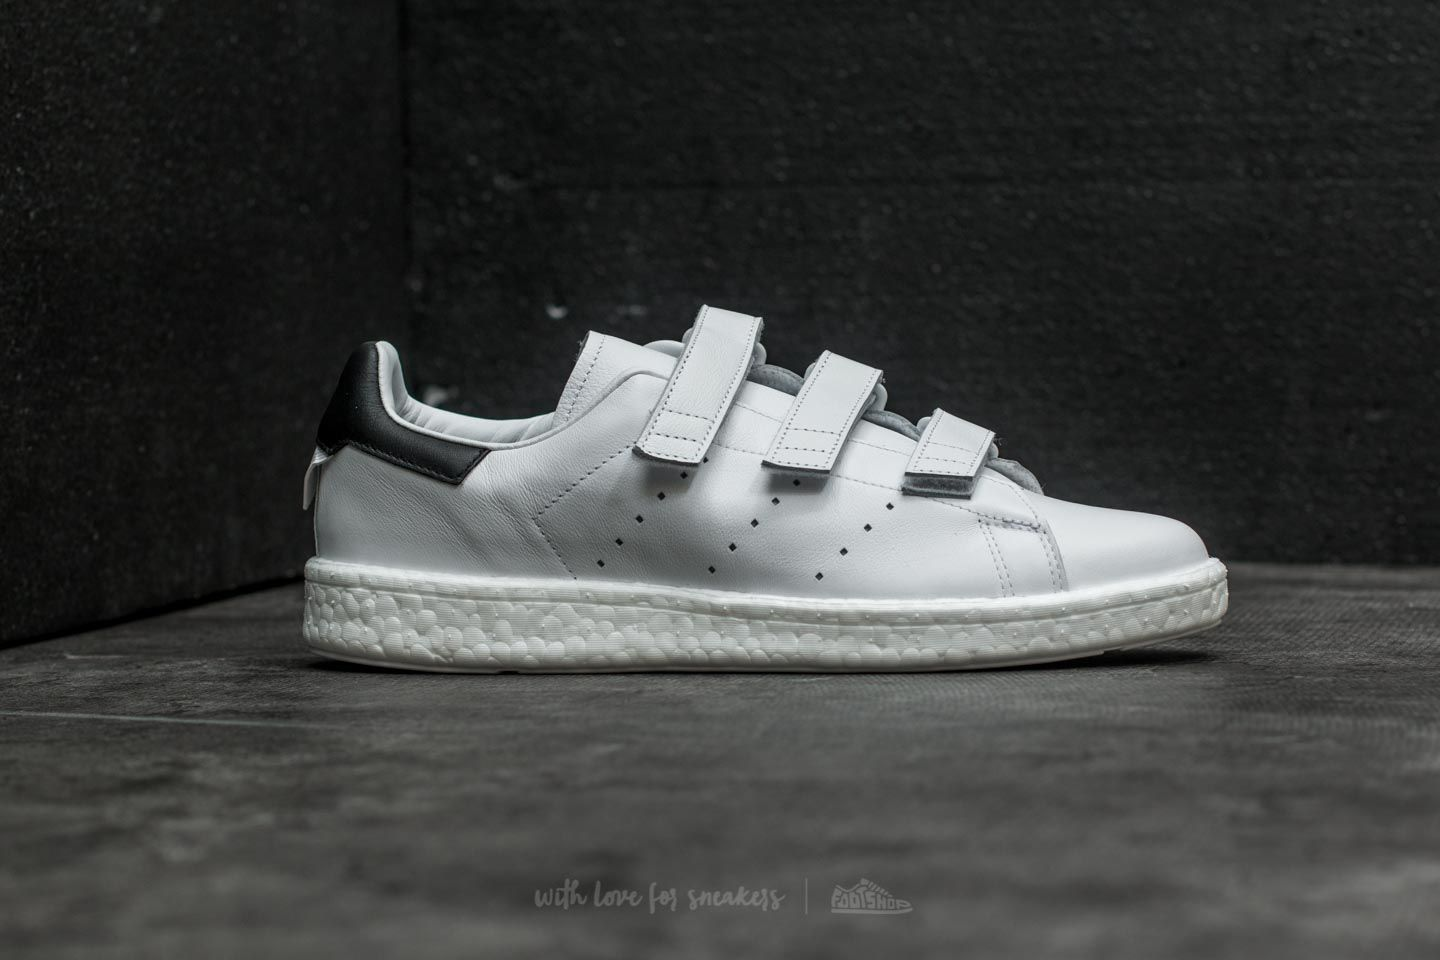 reputable site d431a 709a4 adidas x White Mountaineering Stan Smith CF Ftw White/ Ftw ...